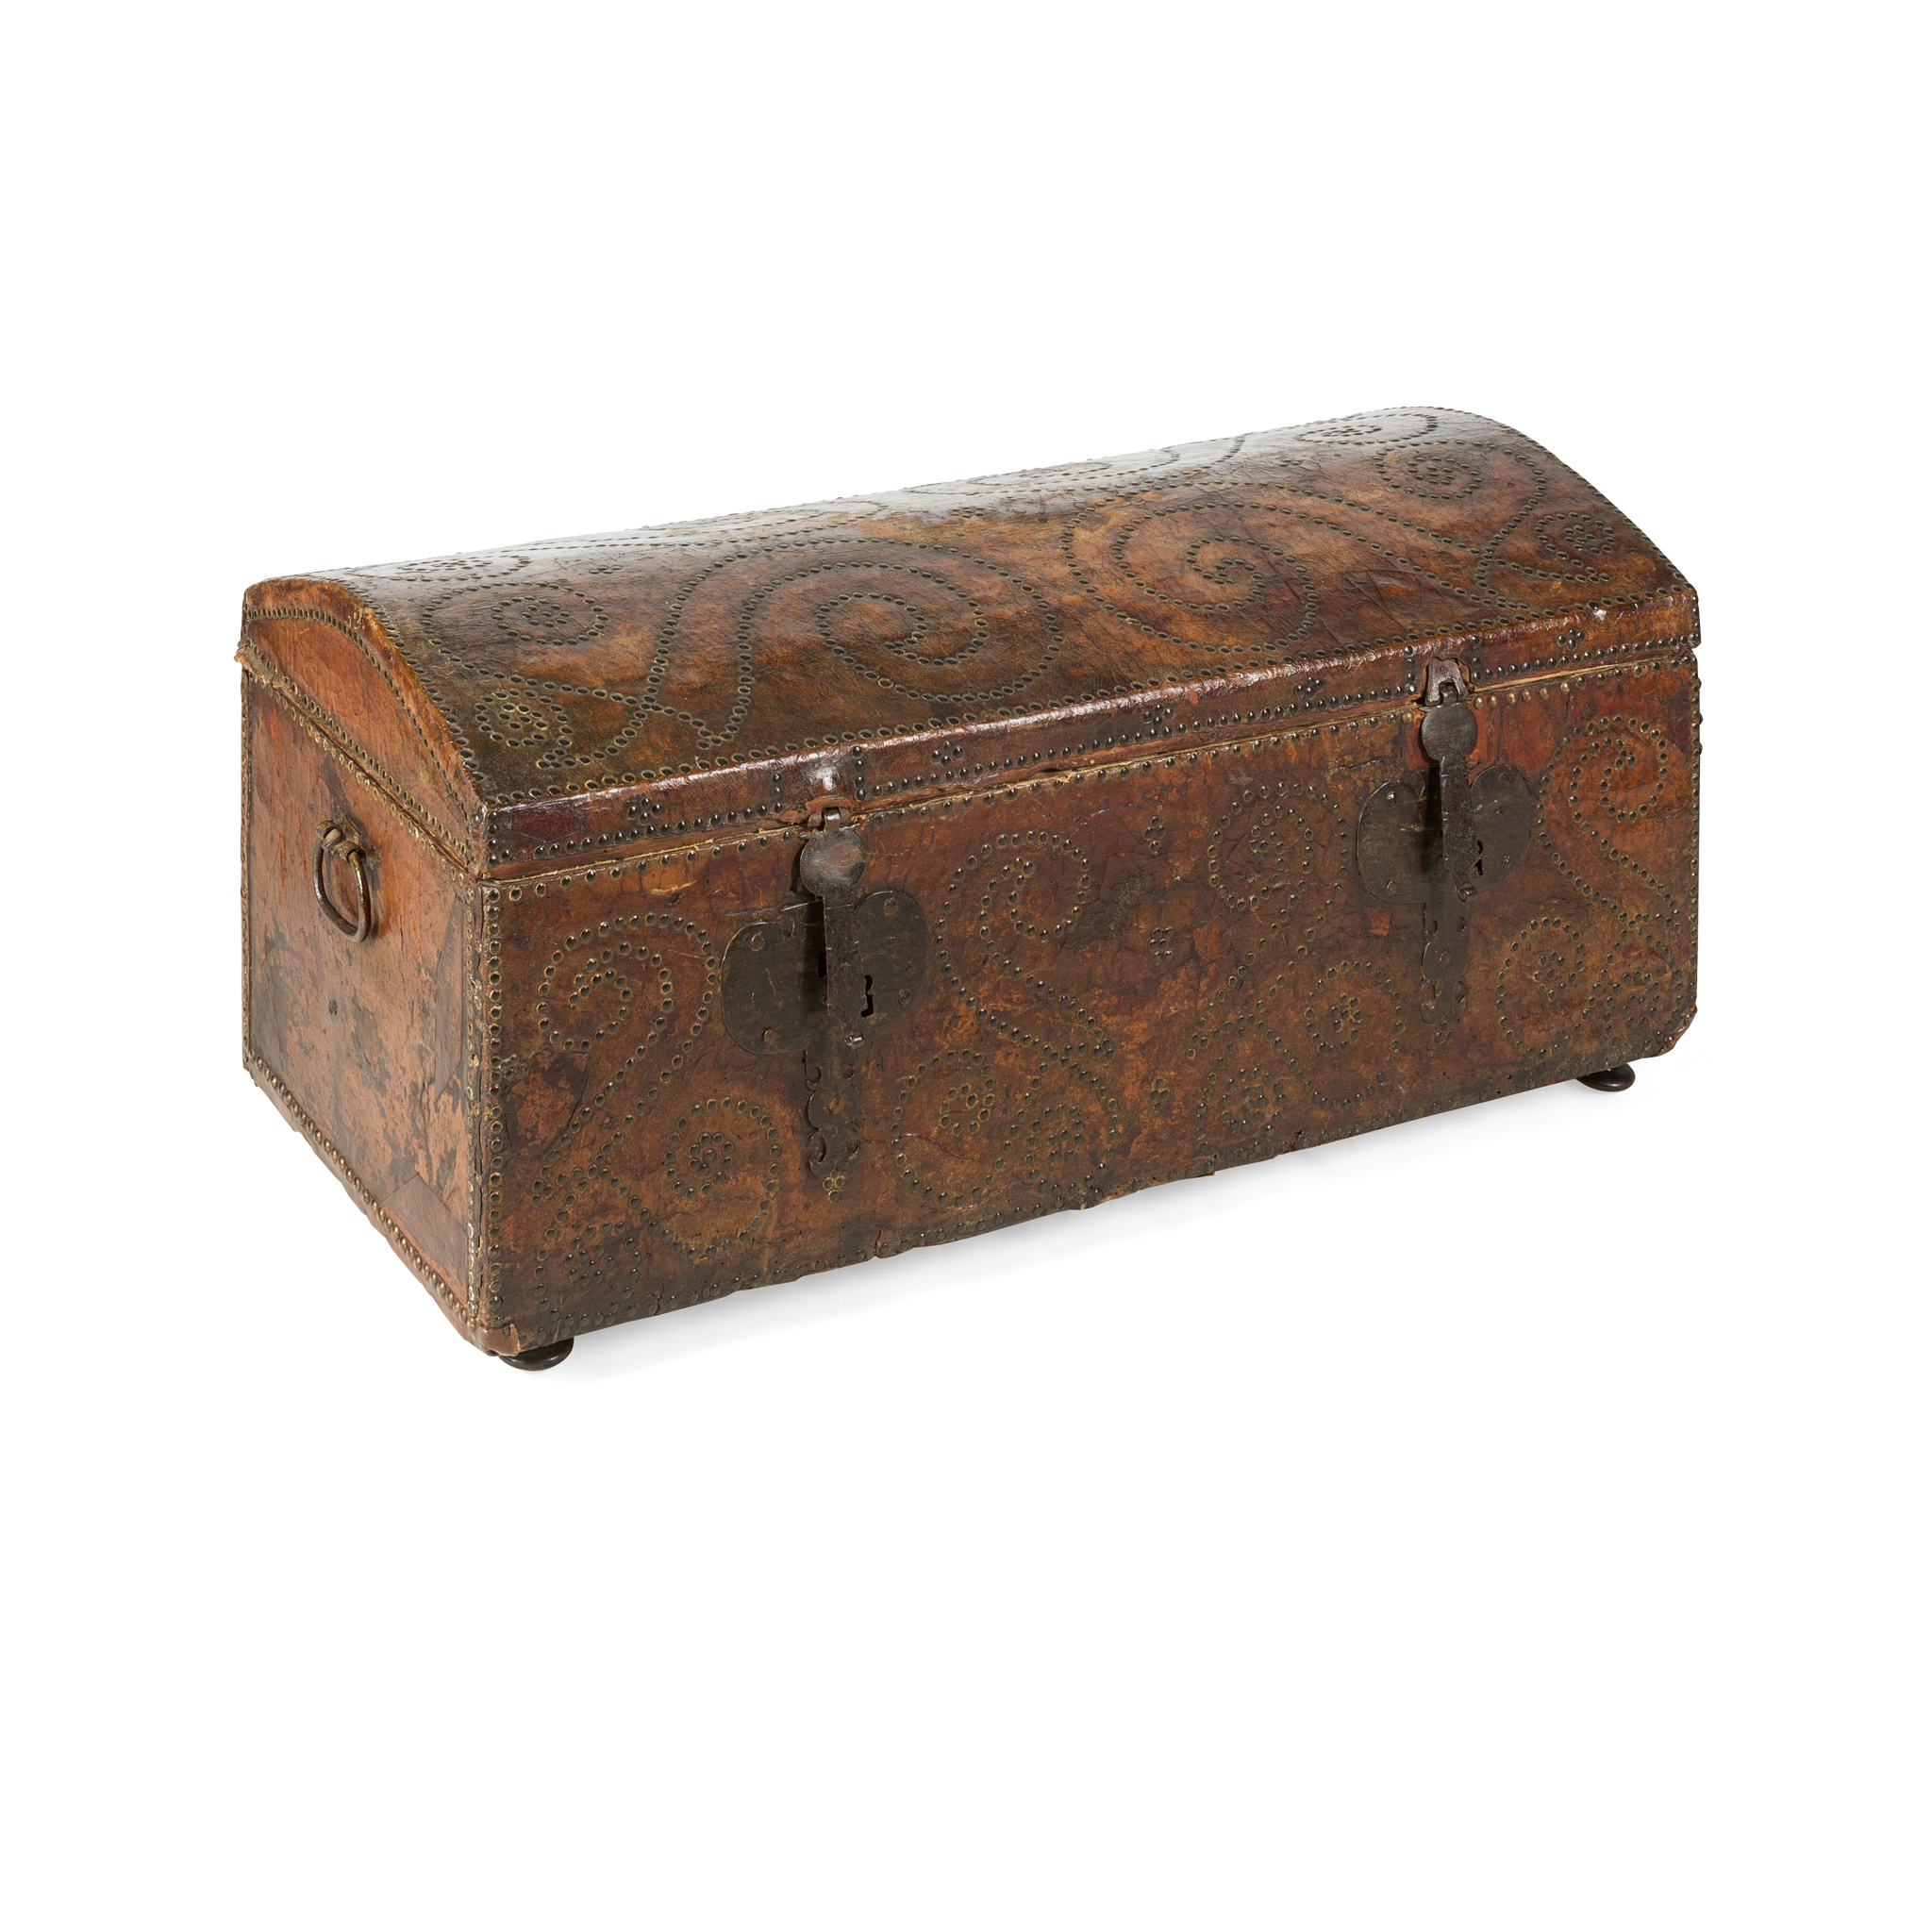 LEATHER AND BRASS STUDDED DOME TOP TRUNK 17TH CENTURY